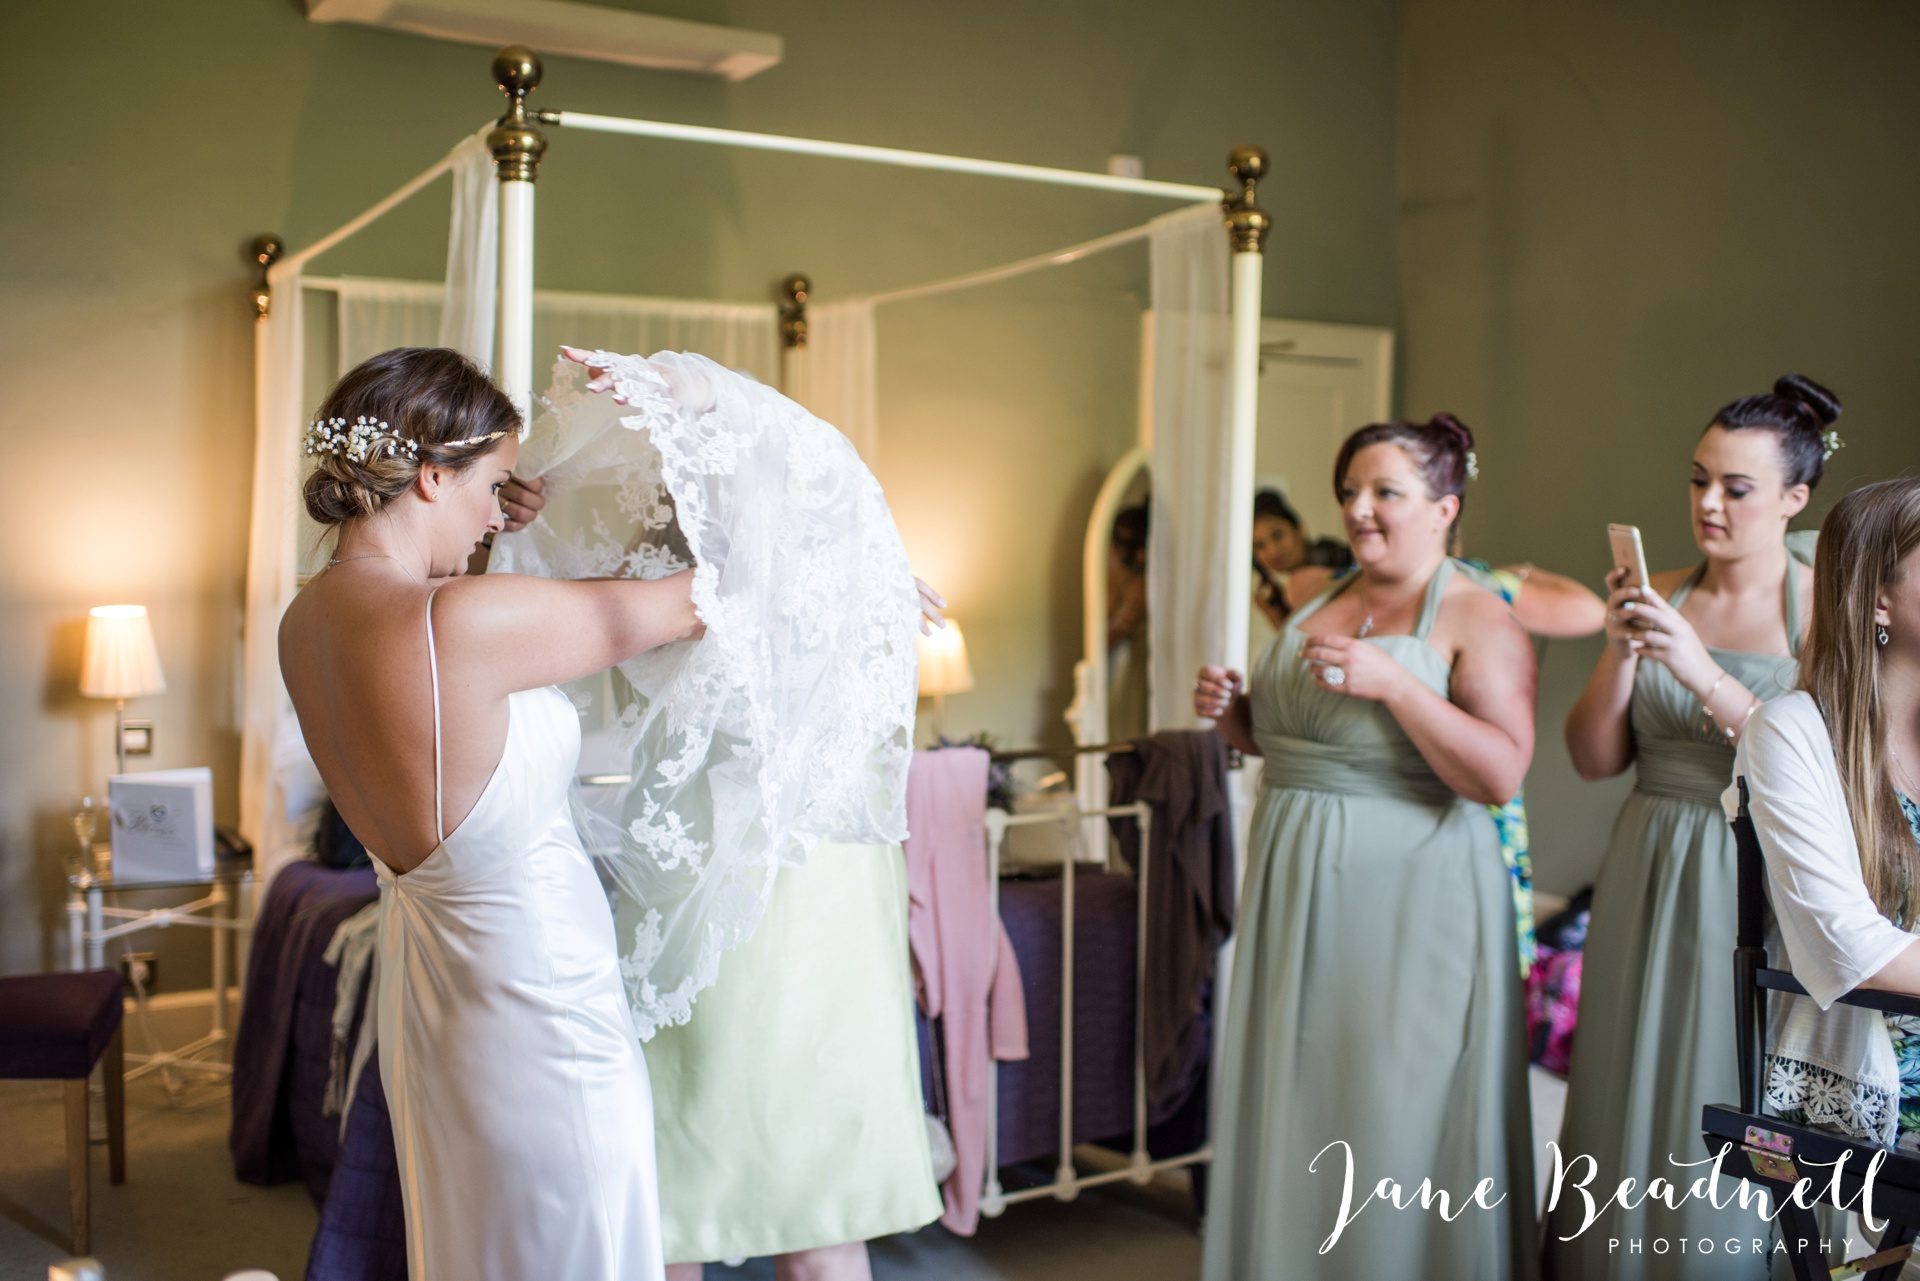 Jane Beadnell fine art wedding photographer The Old Deanery Ripon_0014